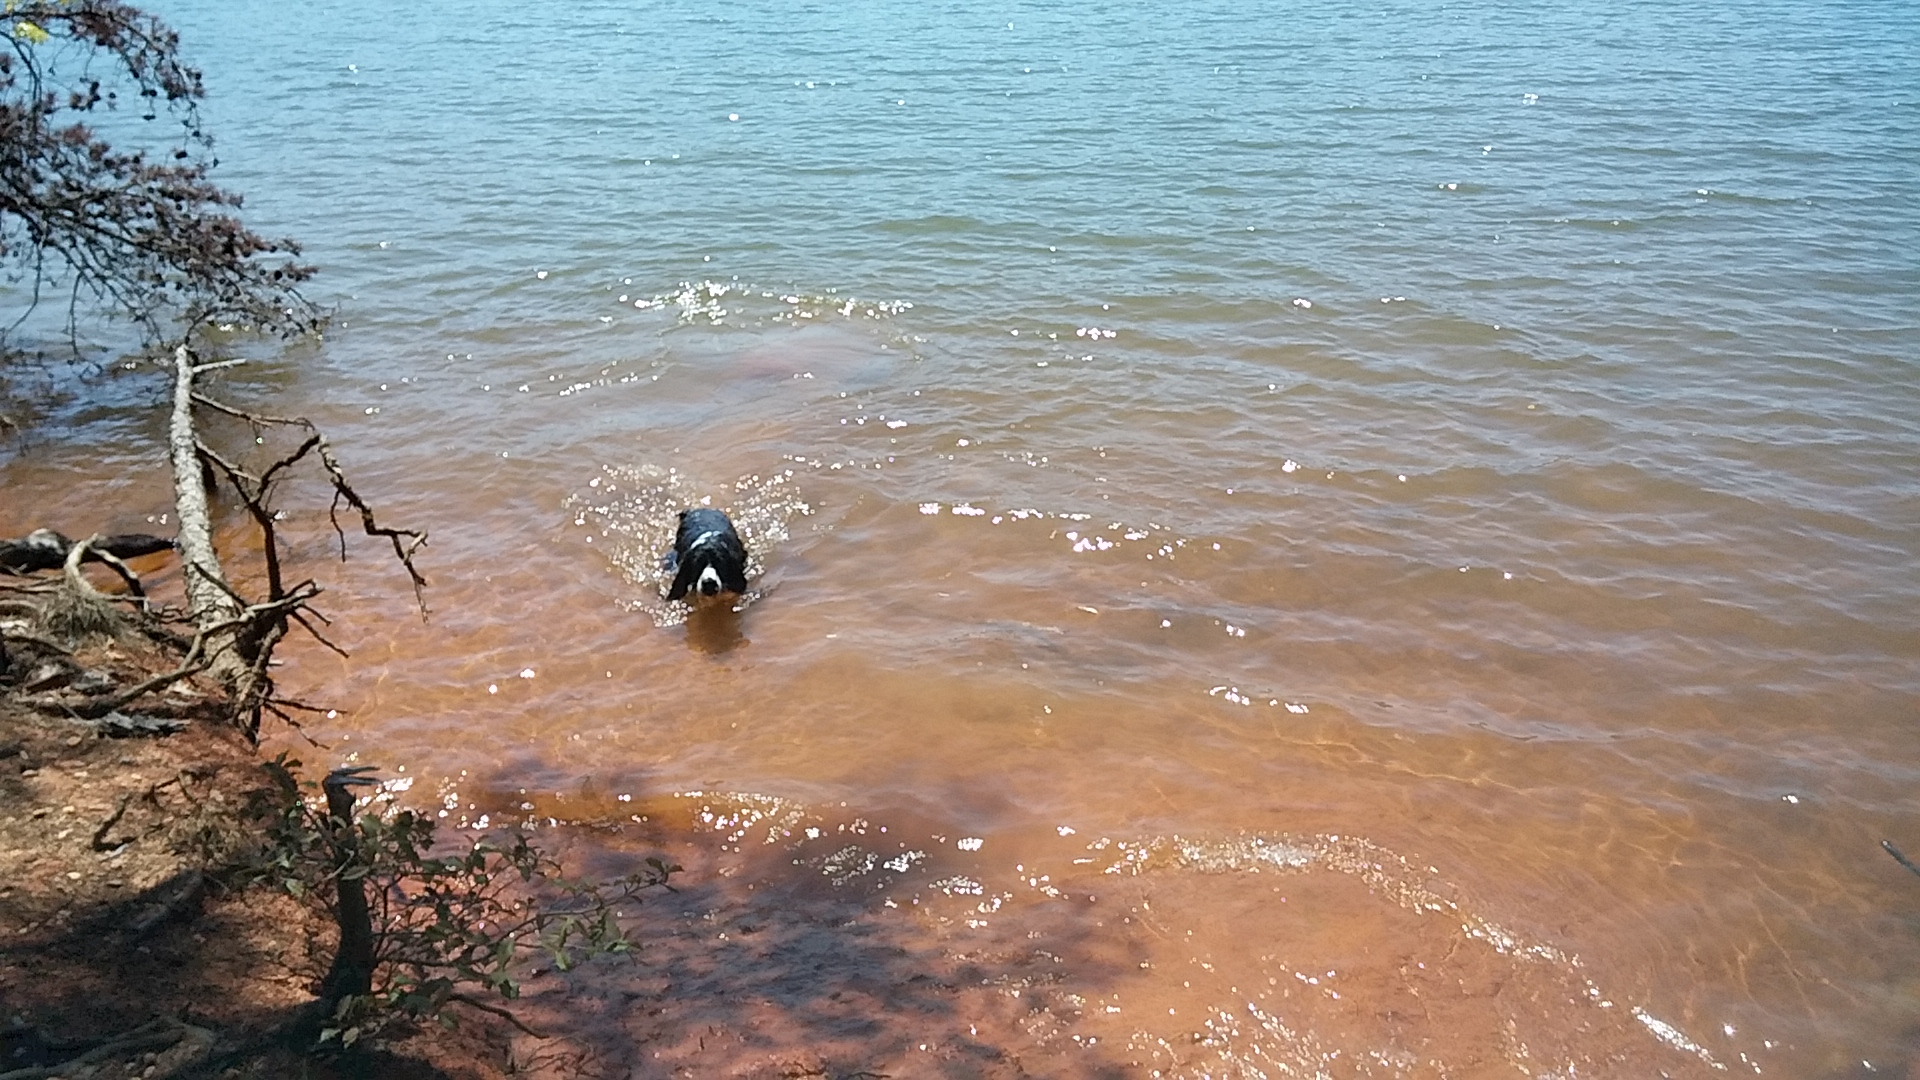 Trooper shows us he knows how to swim.